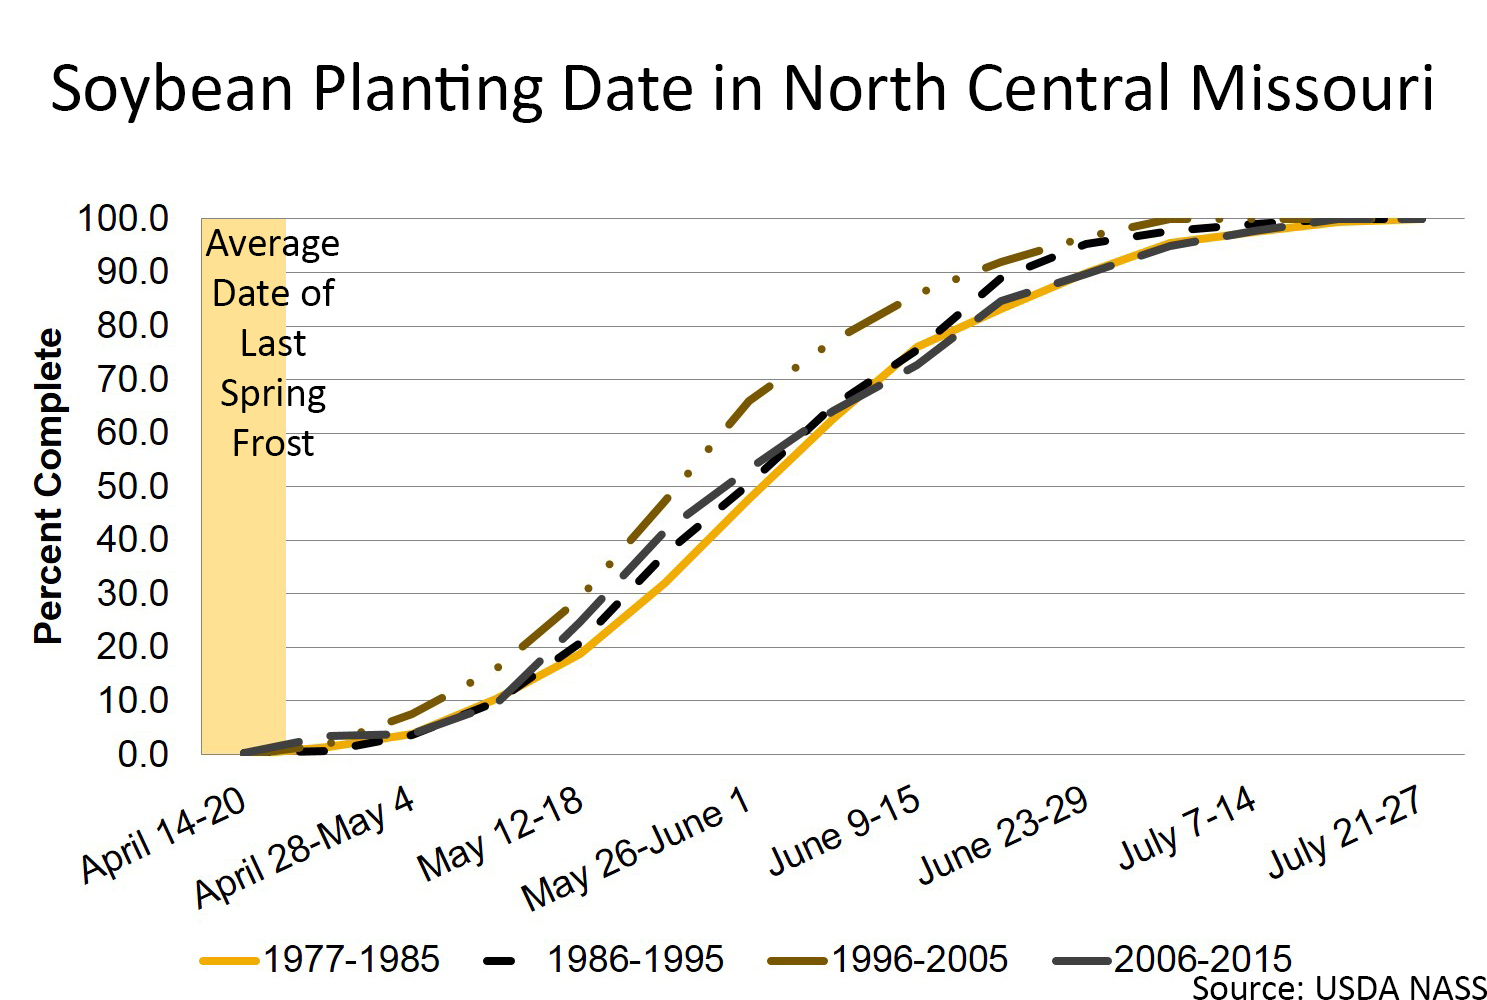 Soybean planting date in north central Missouri chart